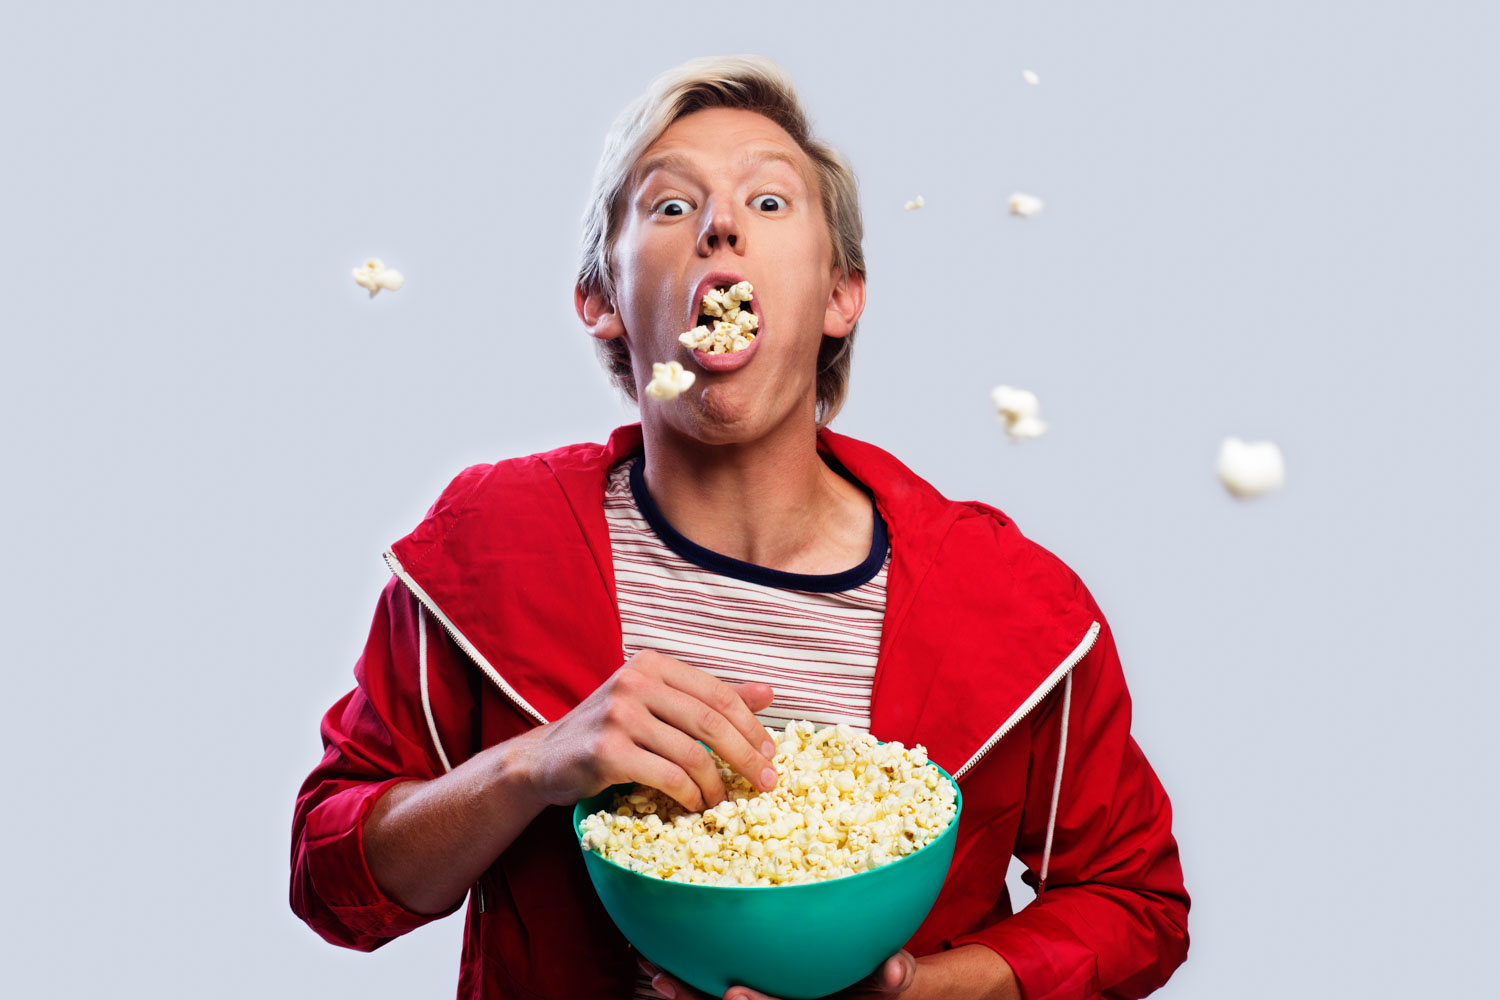 Man spitting out popcorn